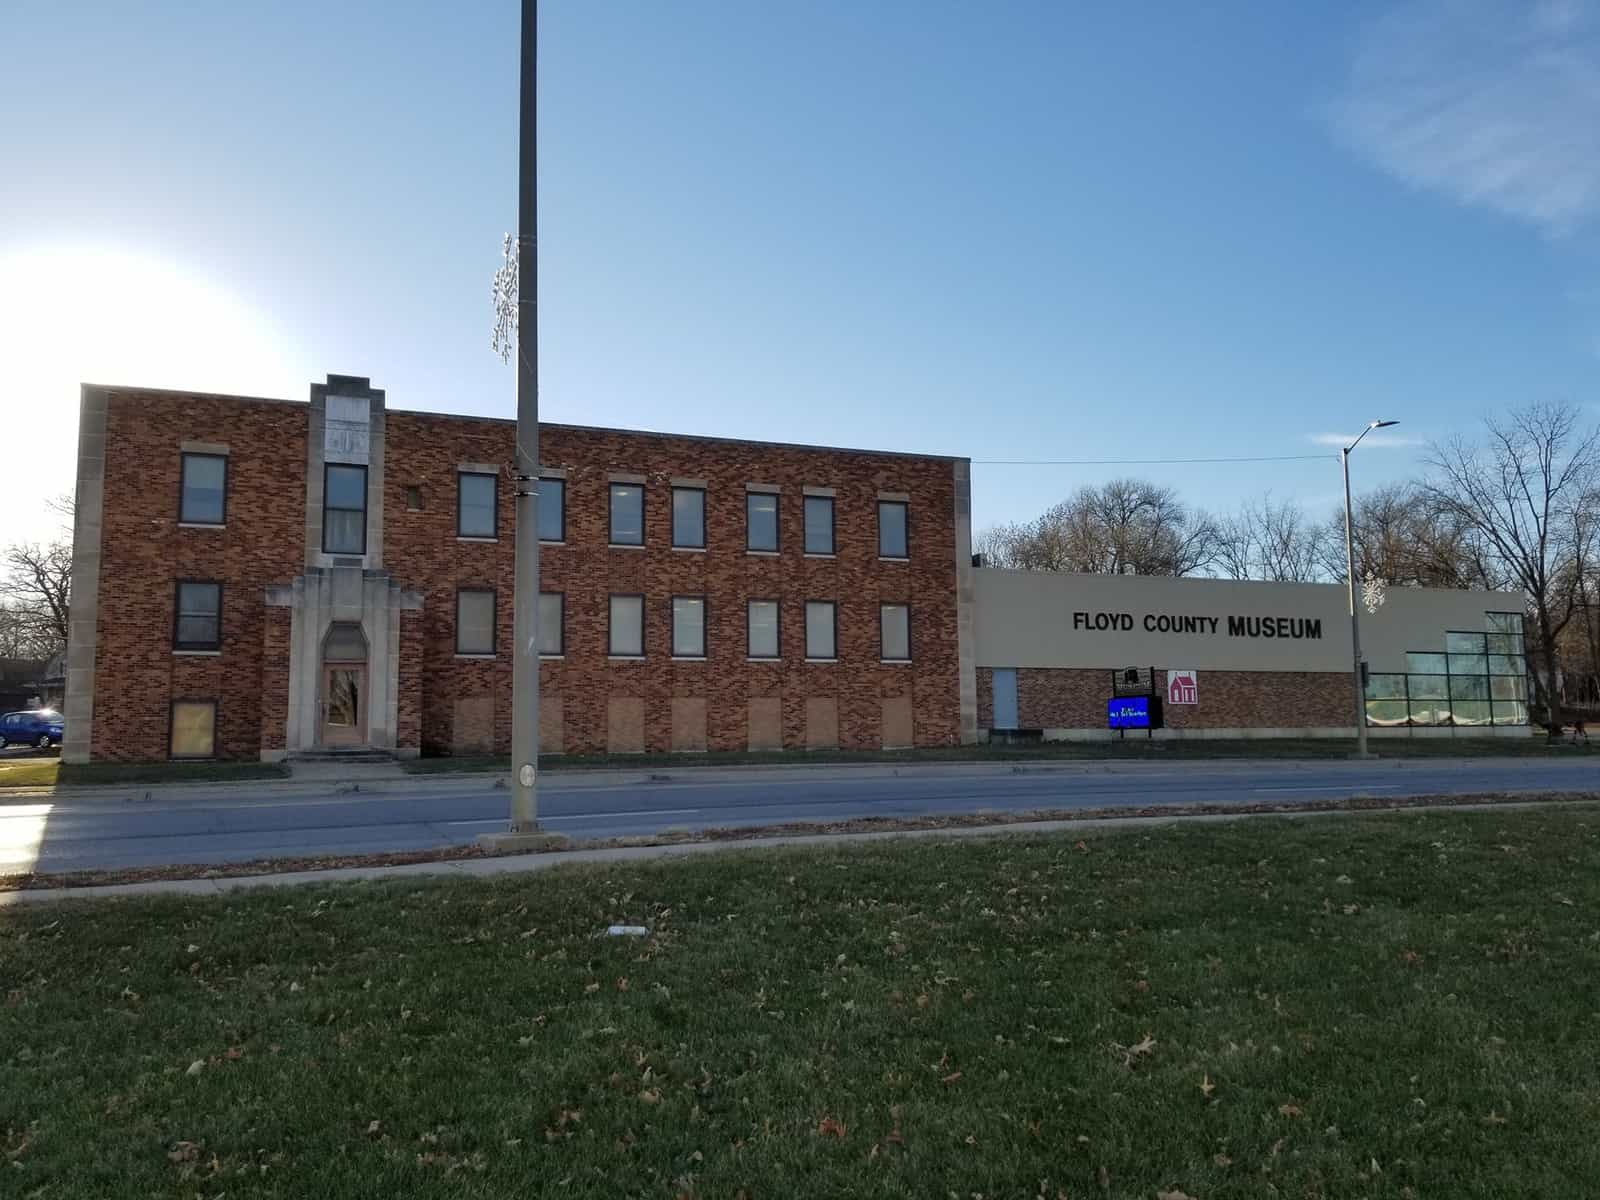 Floyd County Historical Museum